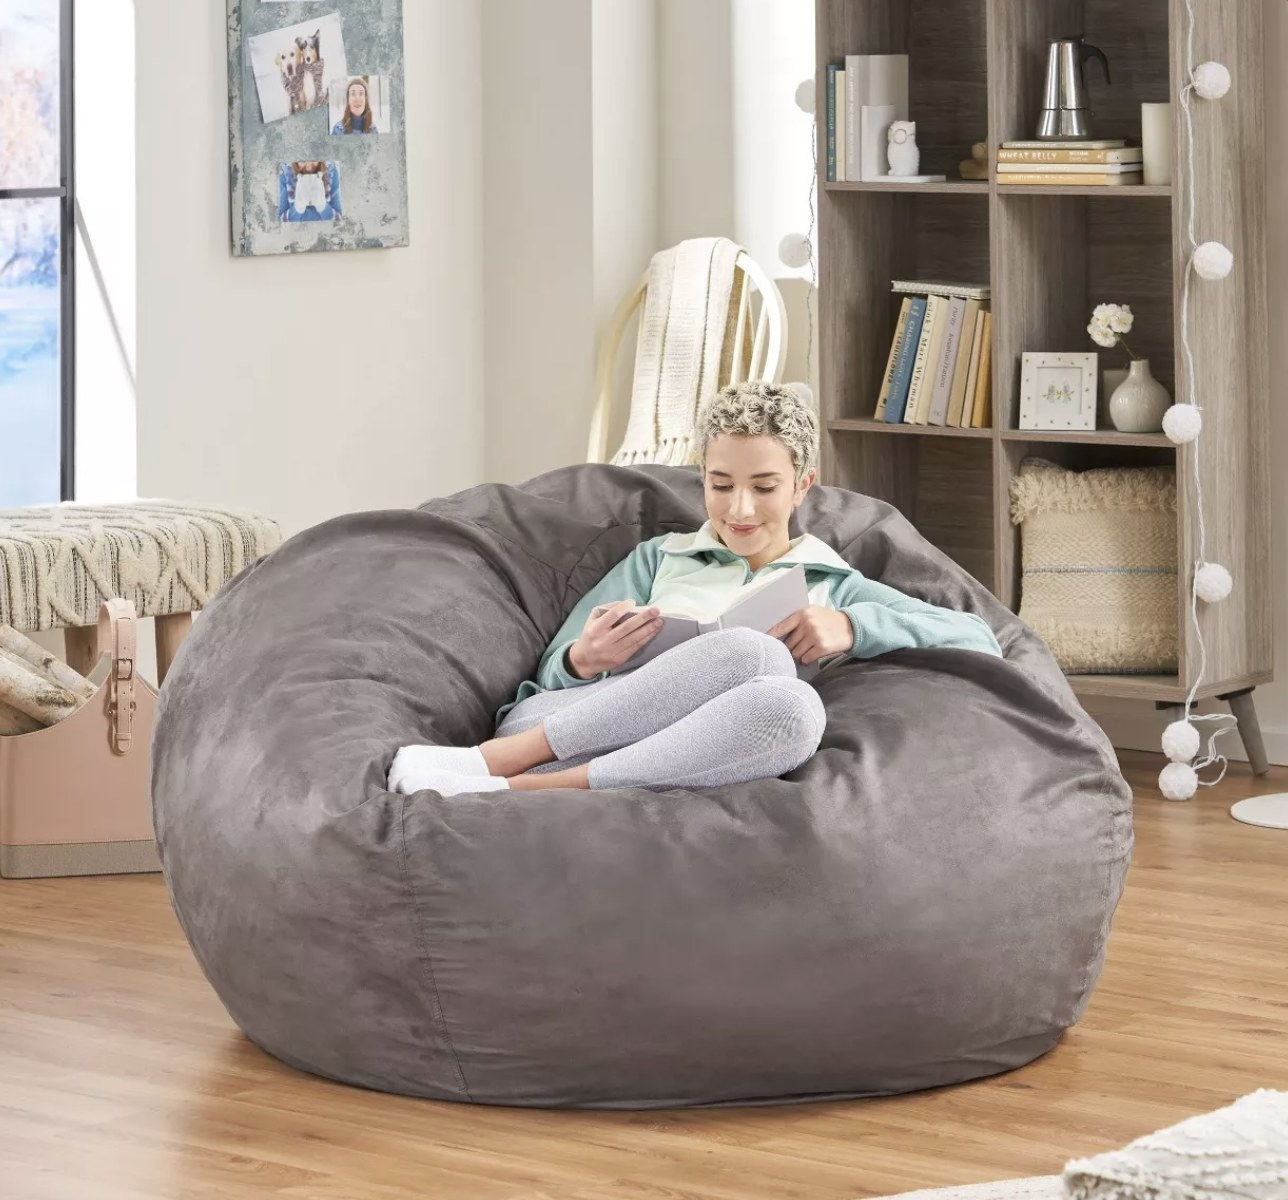 Model is sitting on top of a faux suede grey bean bag reading a book